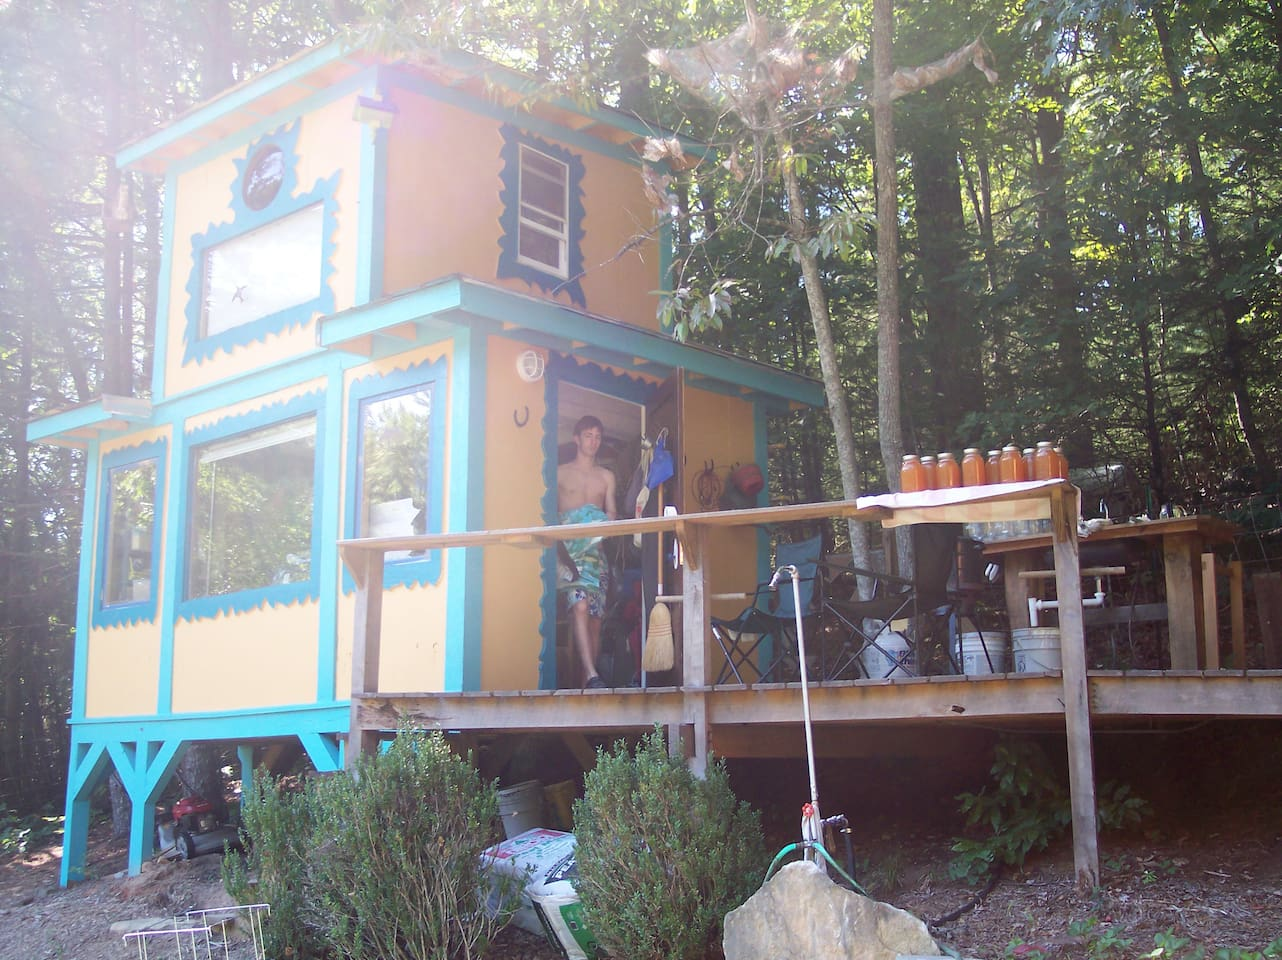 the treehouse/cabin